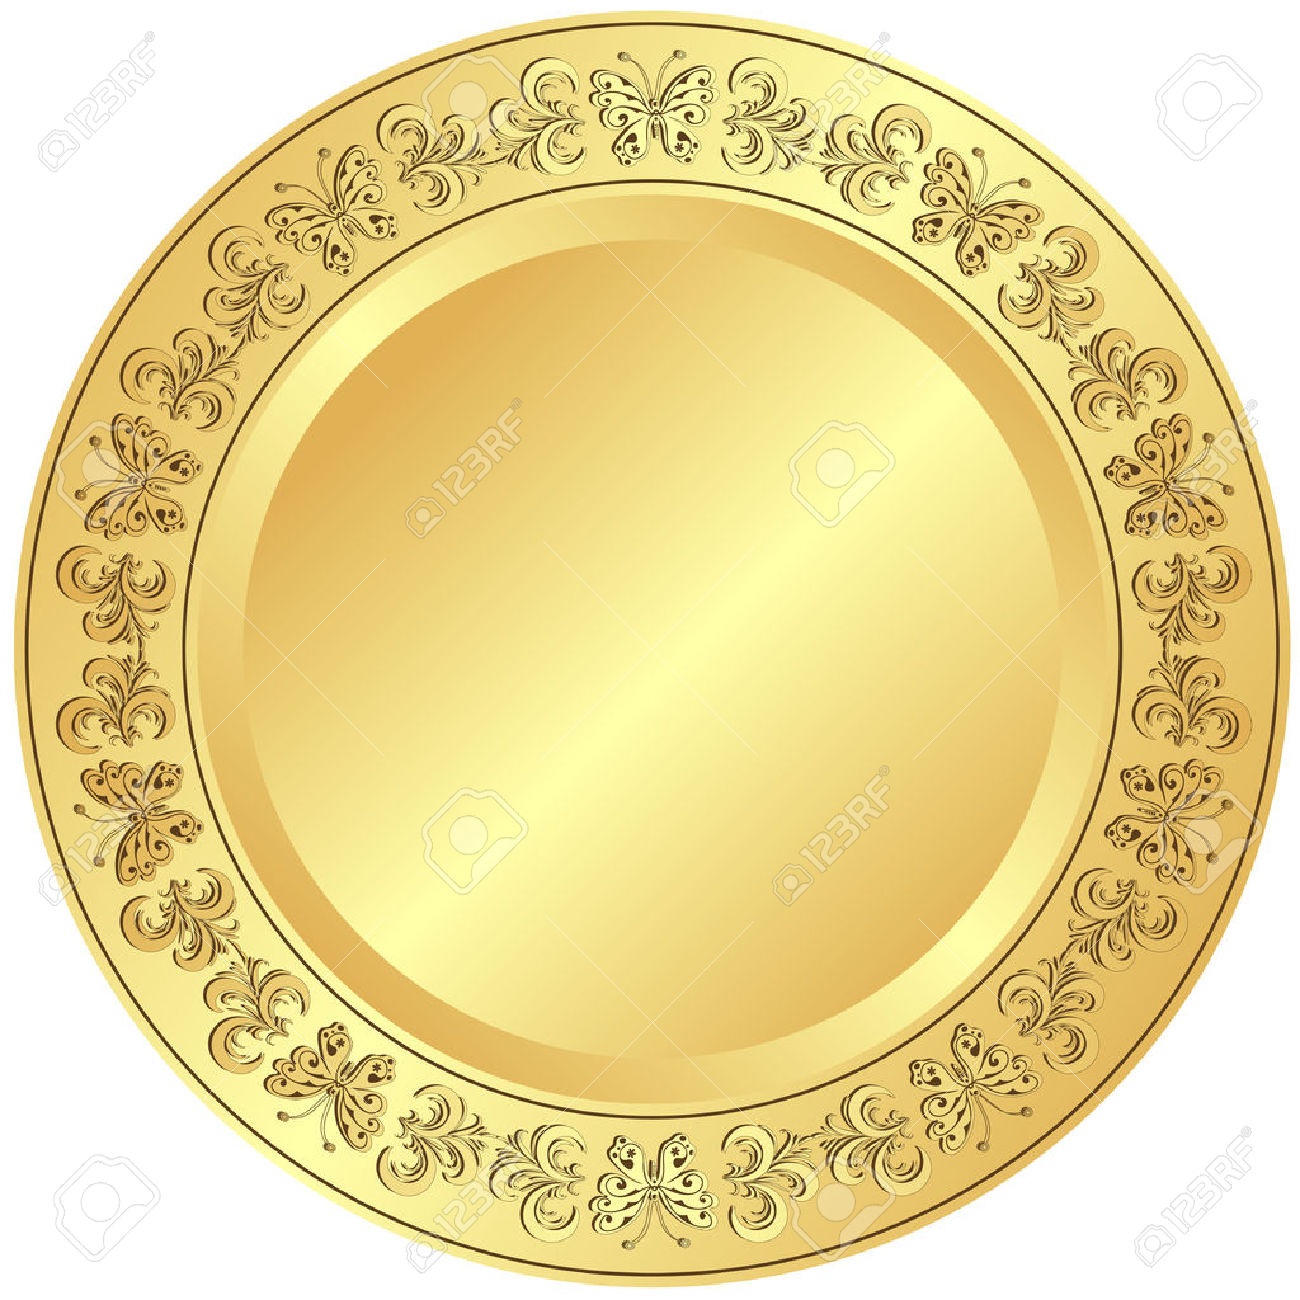 Golden Plate With Floral Ornament On White Background Royalty Free.